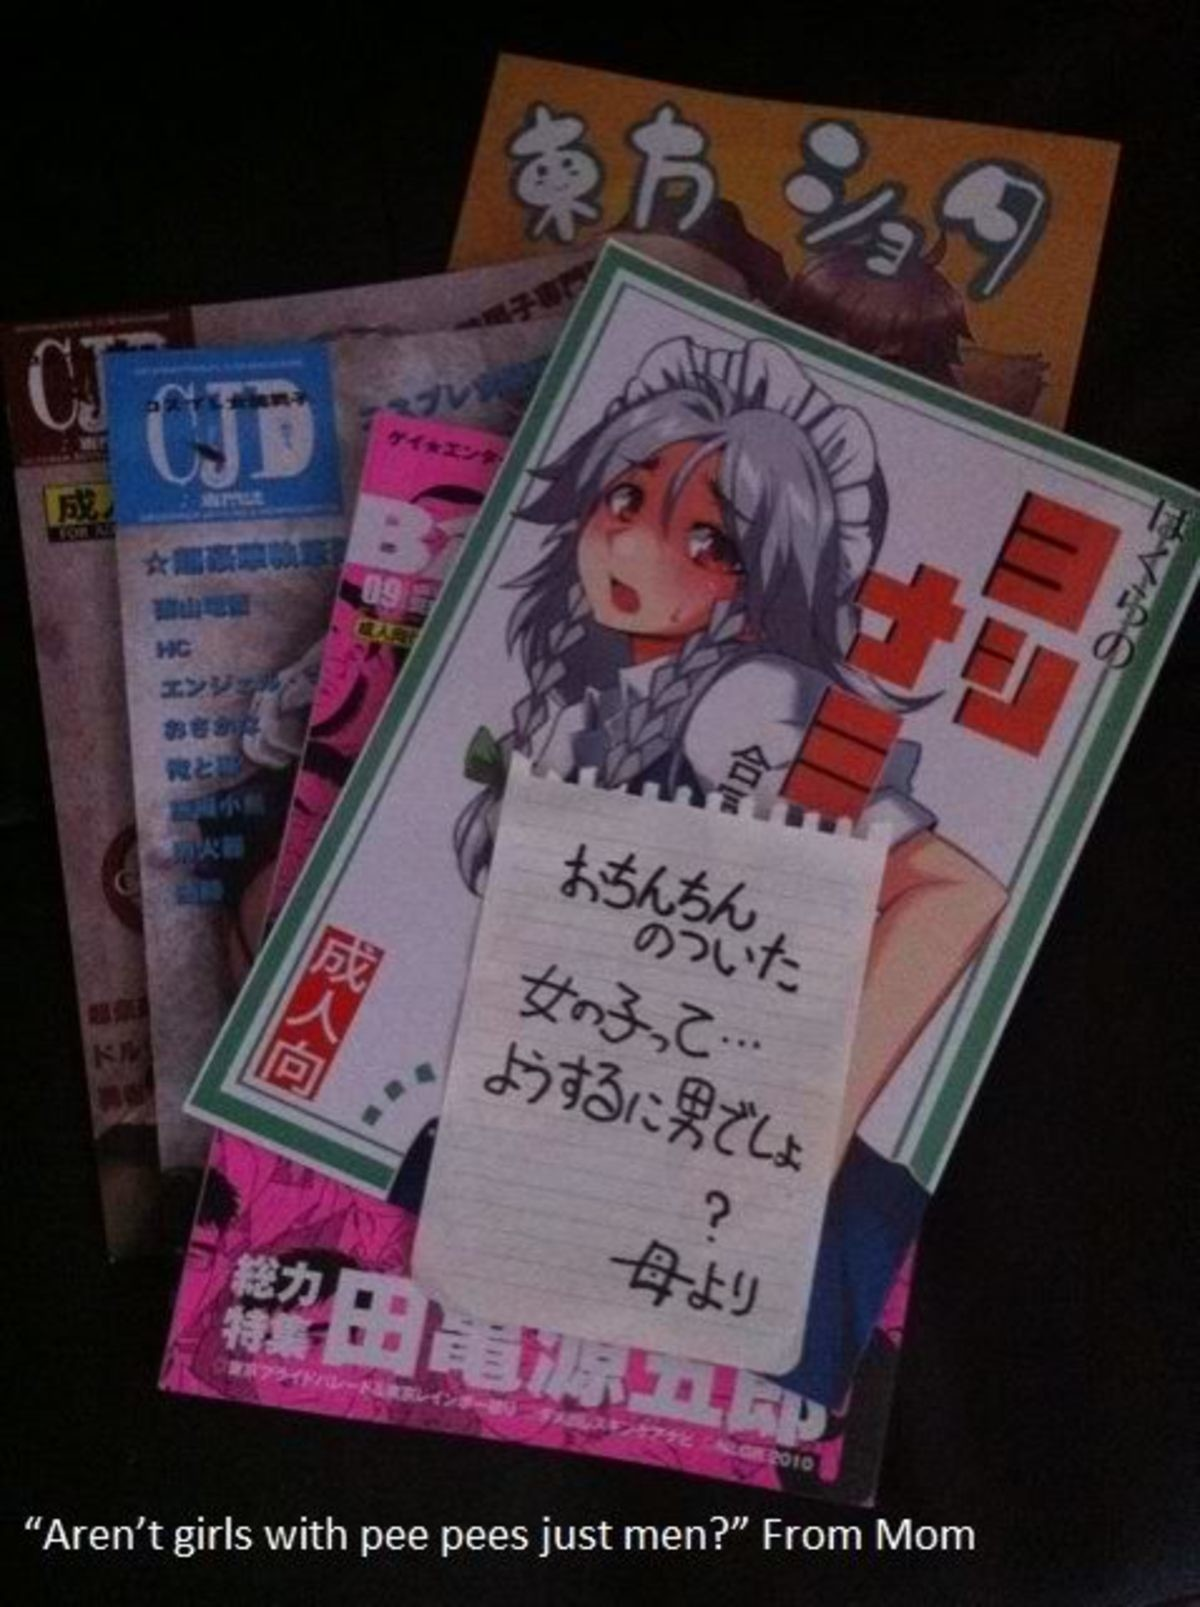 Mom found the girl doujins. .. It's not a dickgirl its a man because that's a trap doujin Also if you actually bothered looking it up you'd find dickgirls are totally different from men MOM,